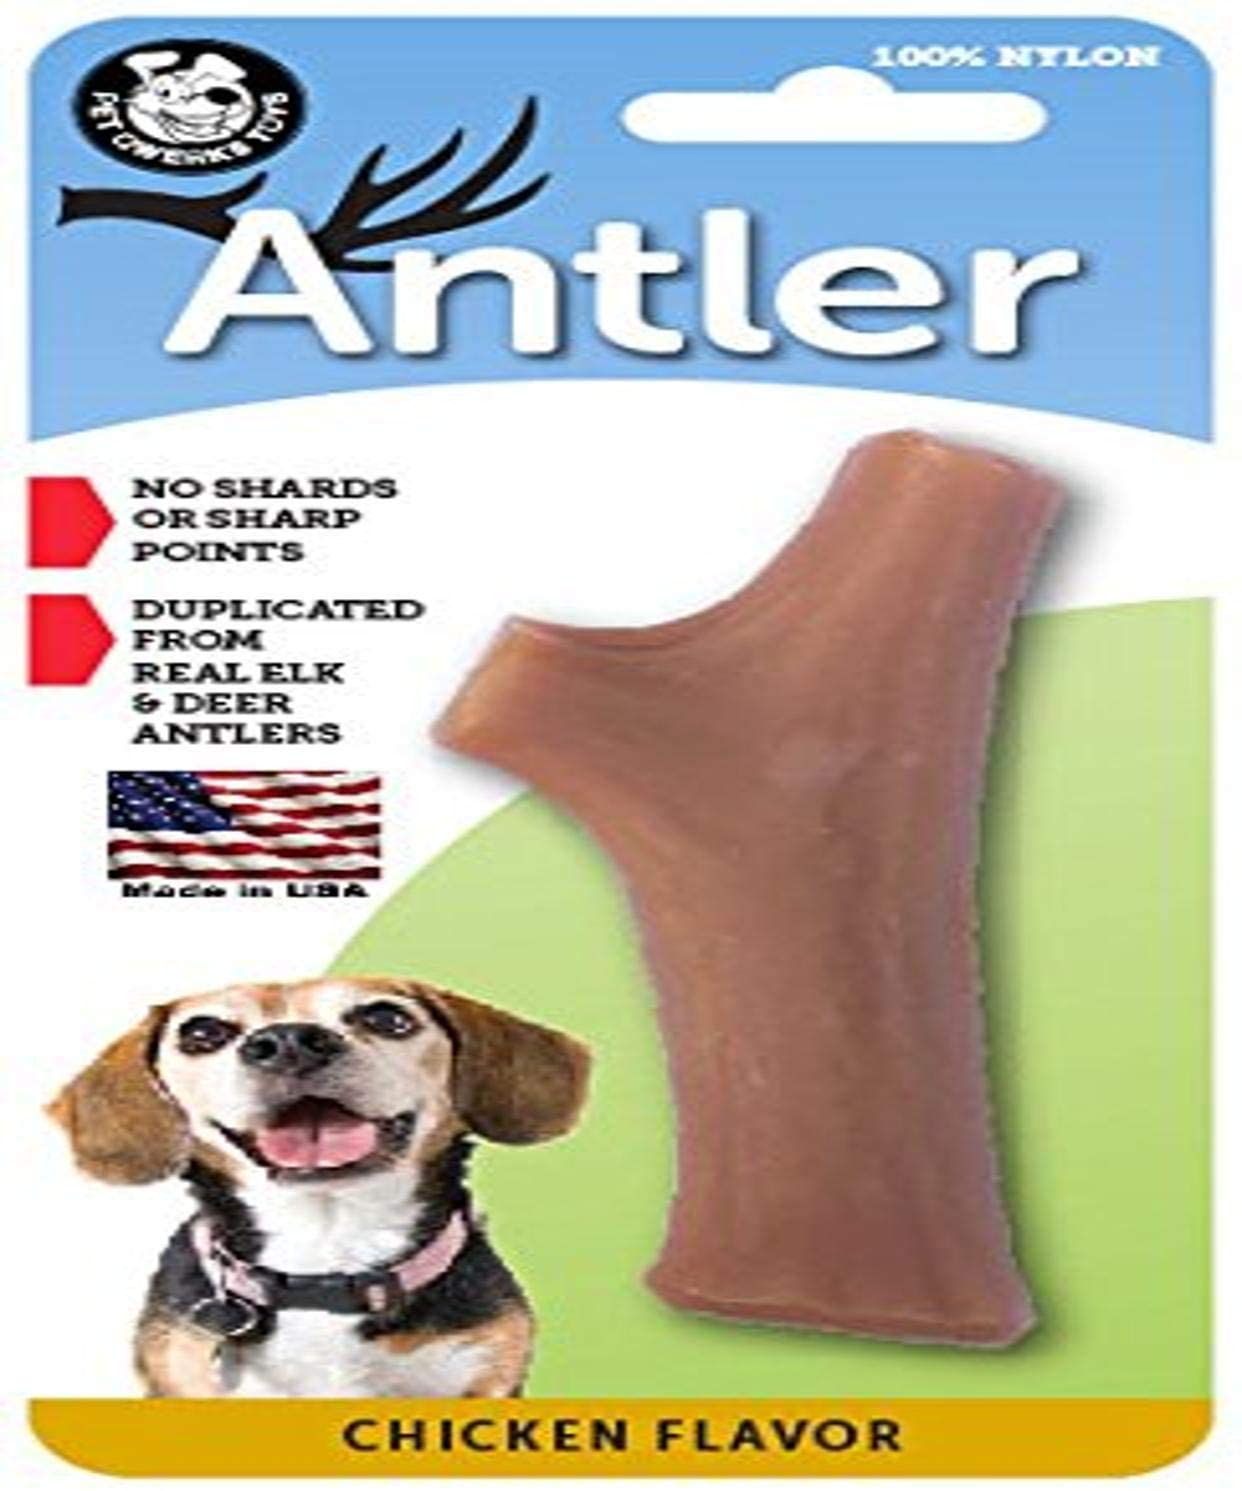 Pet Qwerks Nylon Antler Chicken Flavor - Durable Dog Bones for Aggressive Chewers, Tough Nearly Indestructible Chew Proof Toys | Made in USA, FDA Compliant Nylon - For Medium & Small Dogs (A5)